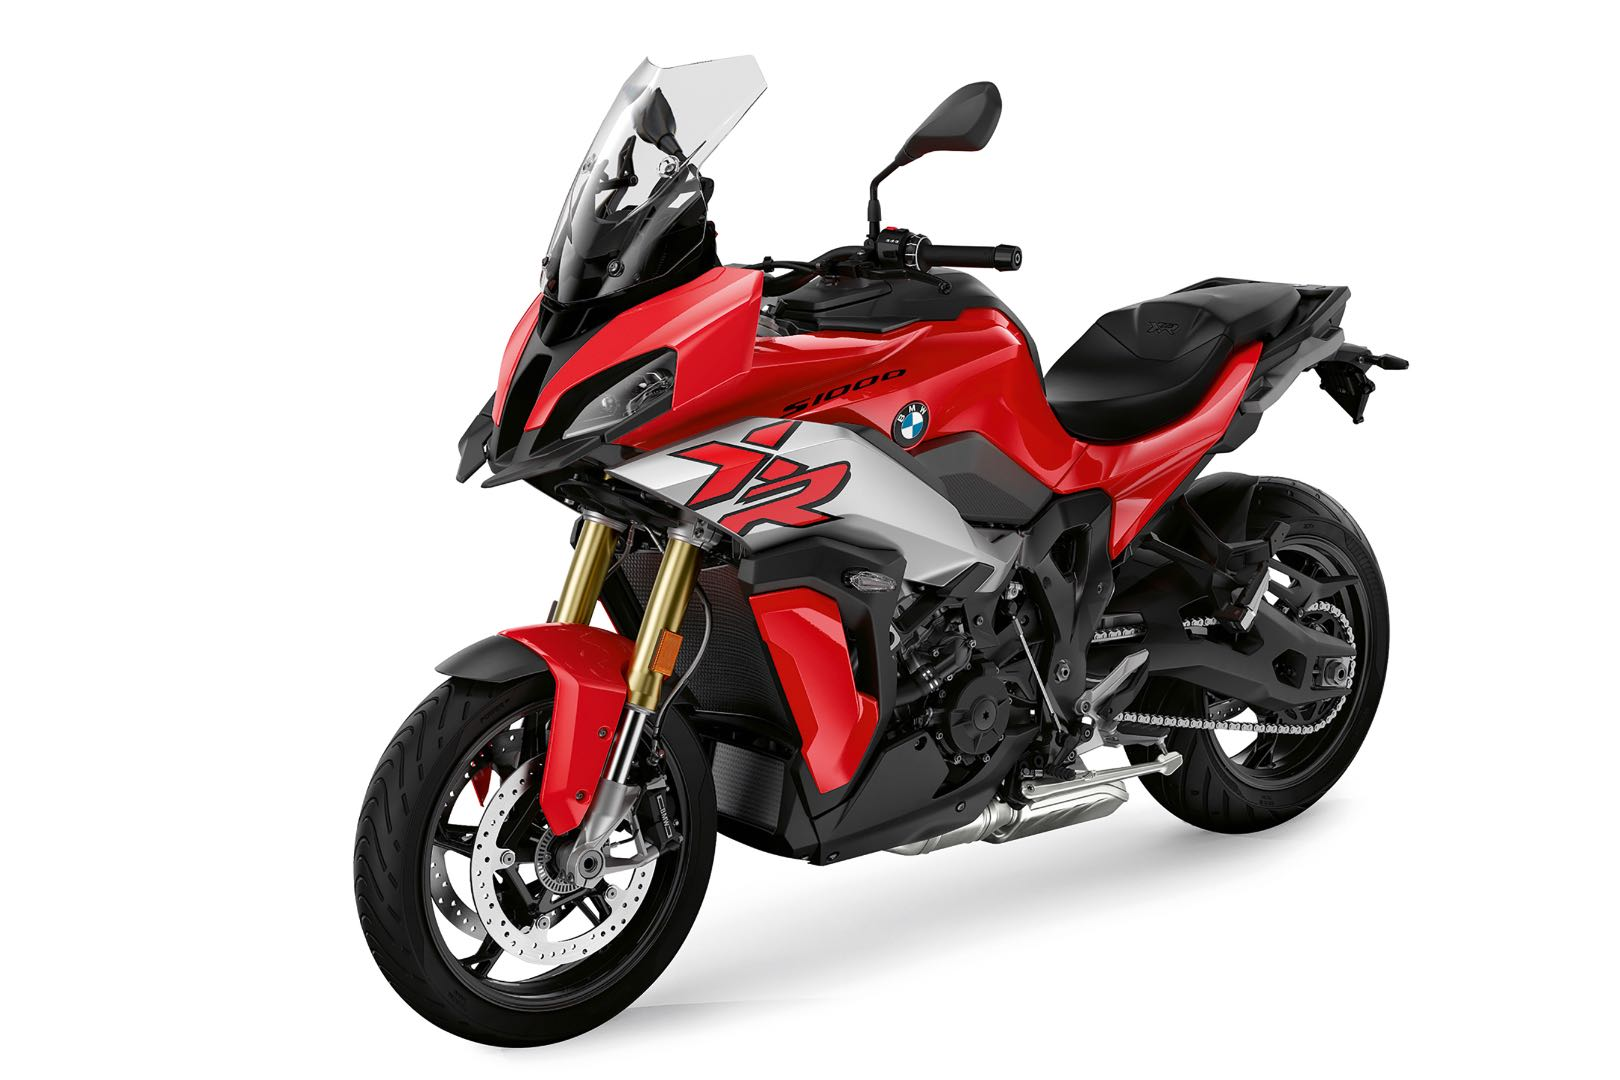 2020 BMW S 1000 XR First Look (15 Fast Facts) - Ultimate ...